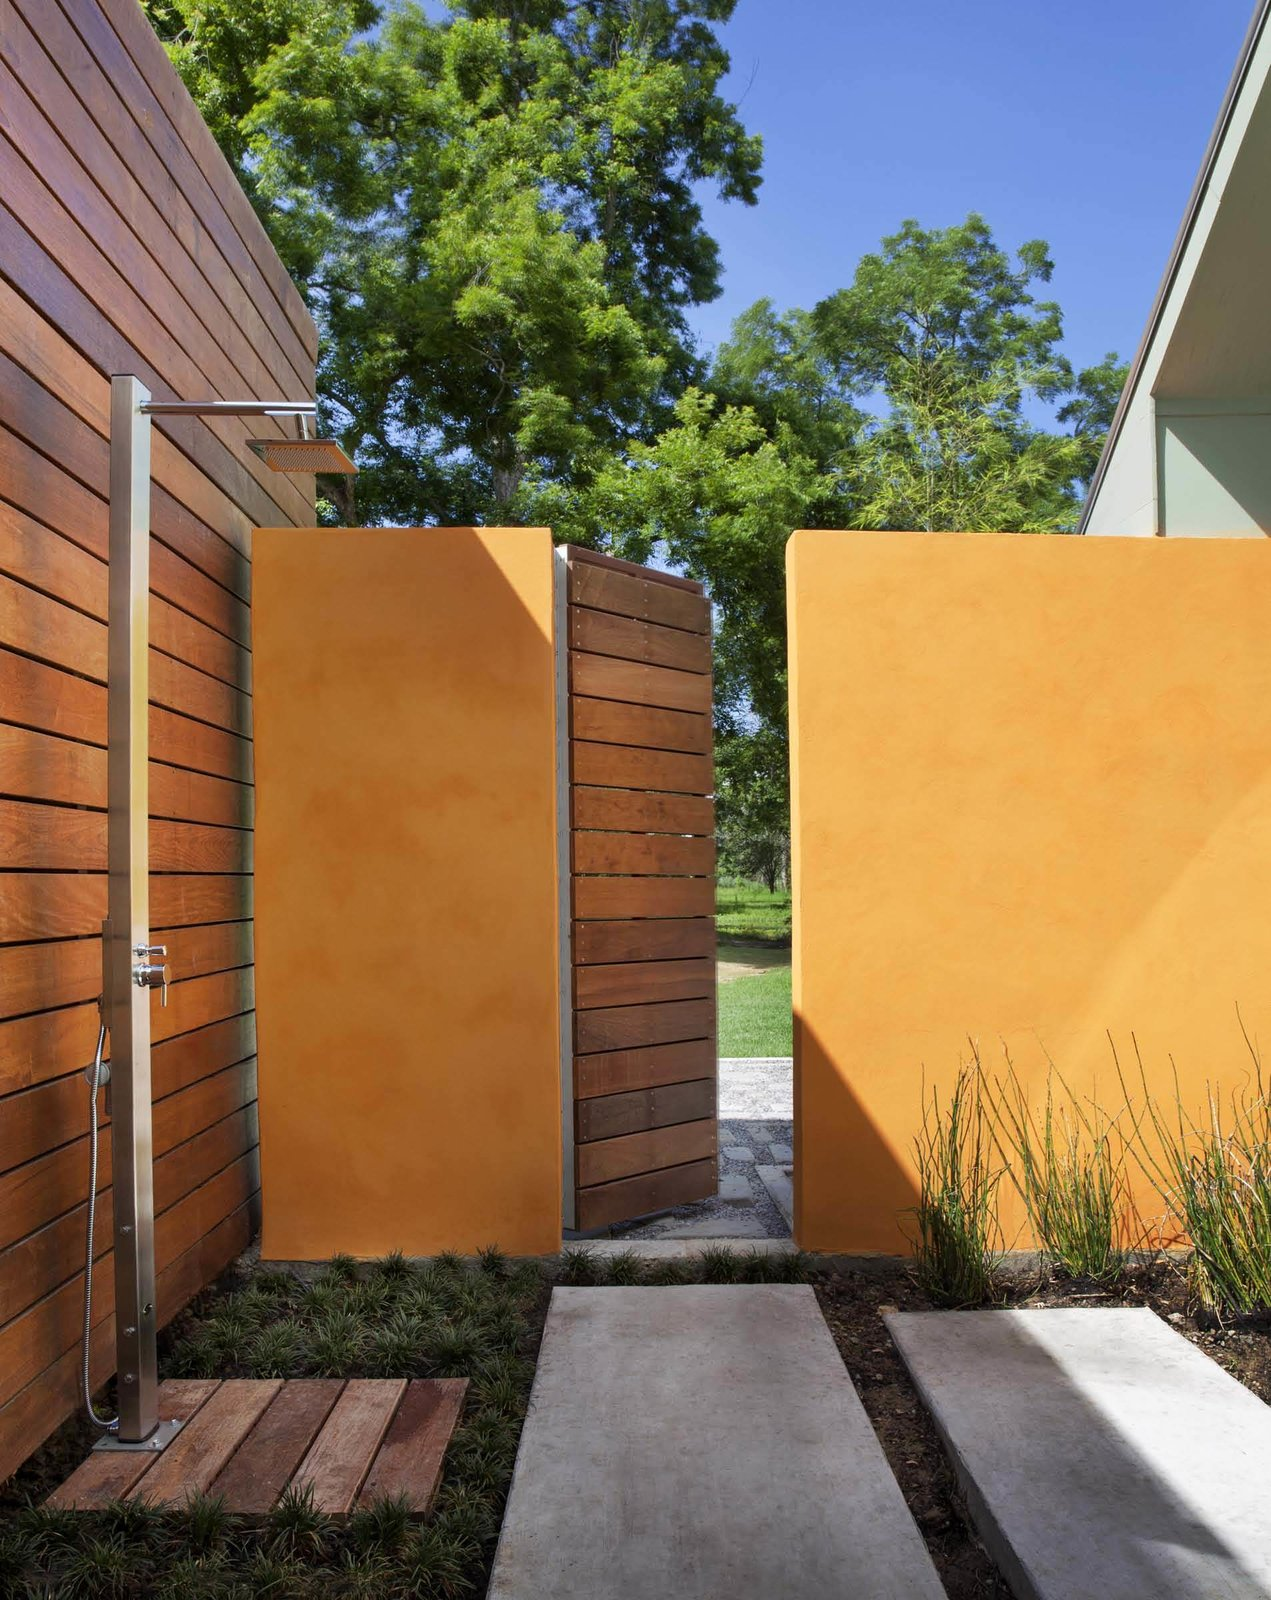 Outdoor The shower offers a multisensory experience: the architect described how clients can take hot showers in the rain or simply lounge in the capacious garden area. Mint plants growing between the pavers release a pleasant smell when stepped upon.  A Renovation Reconnects a House to its Louisiana Landscape by Zachary Edelson